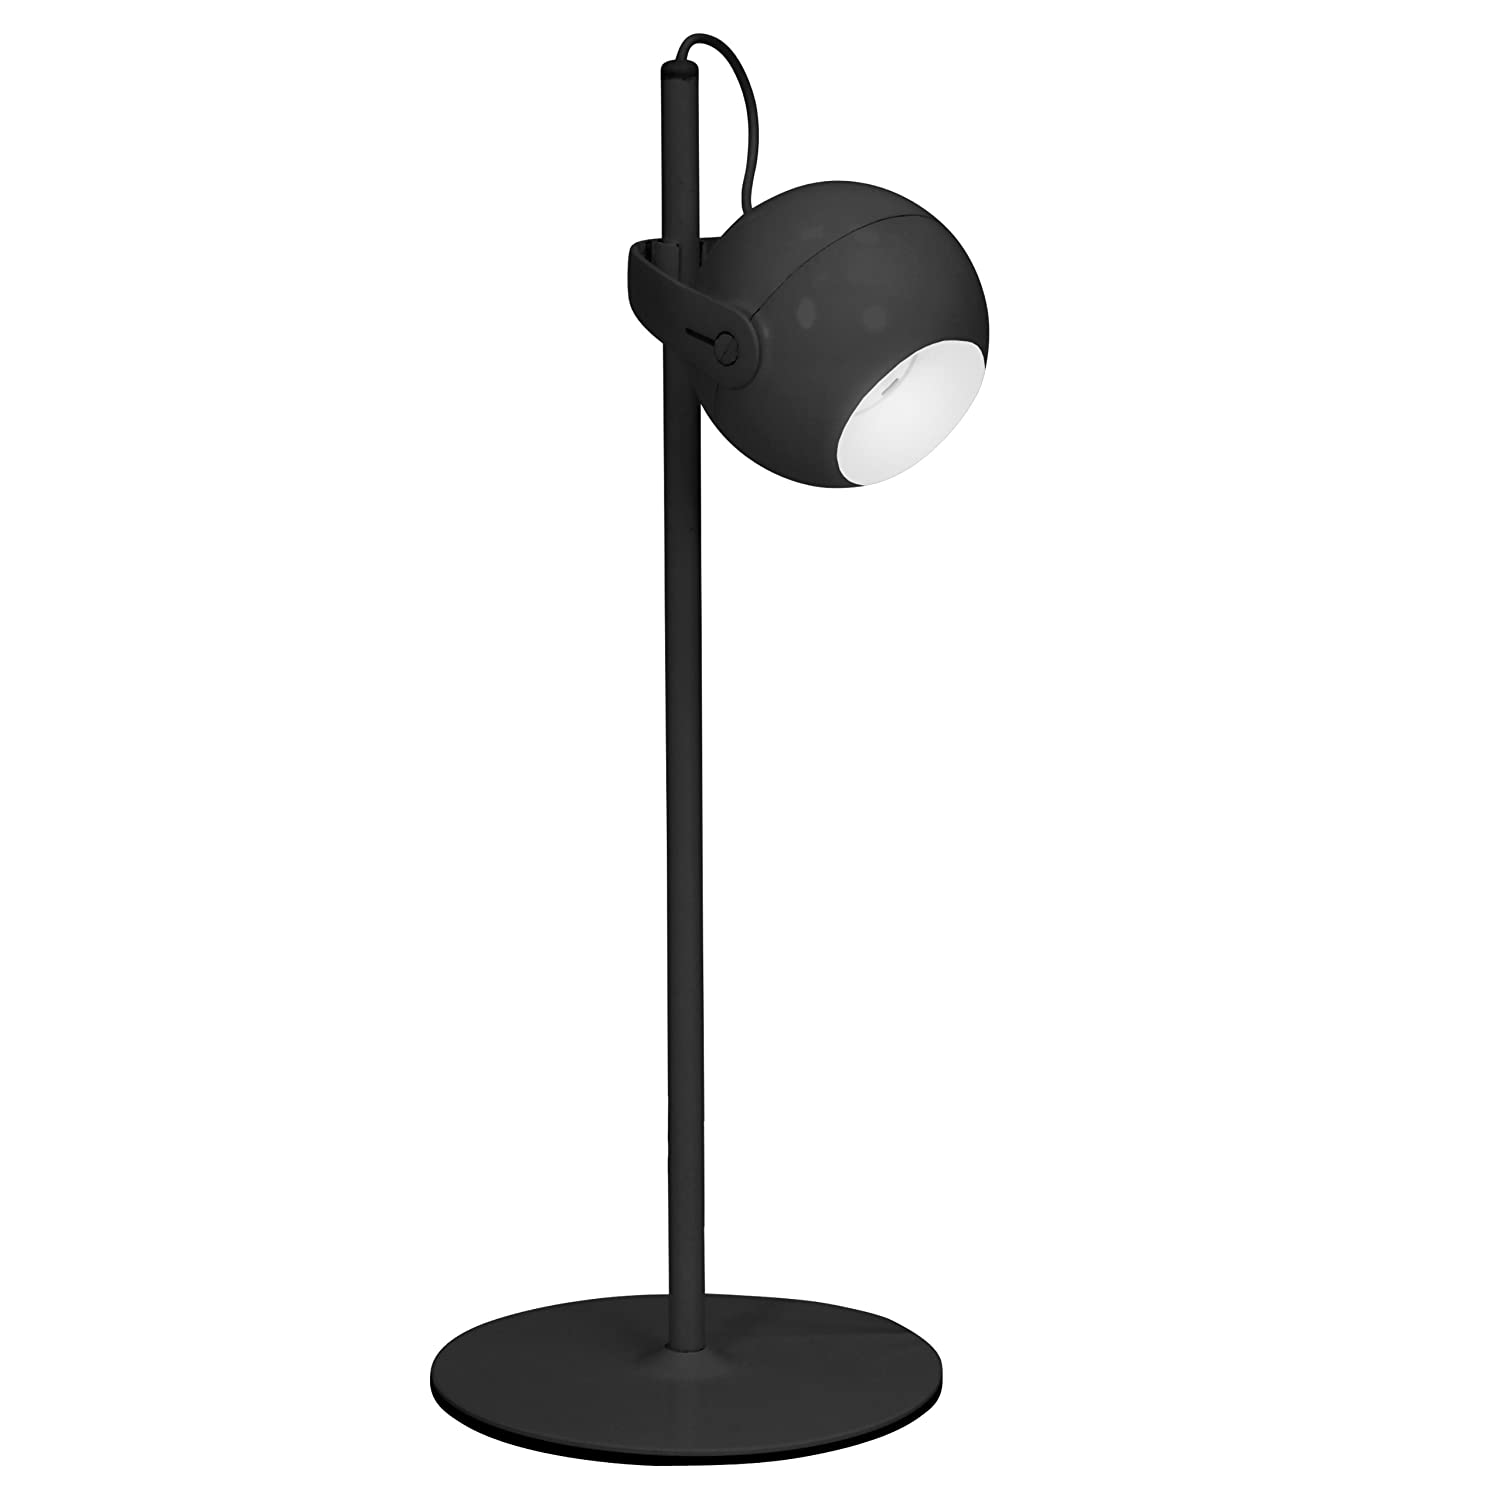 Lumisource electra collection by lumisource youtube lumisource lsledfocus bk led focus table lamp black desk geotapseo Gallery